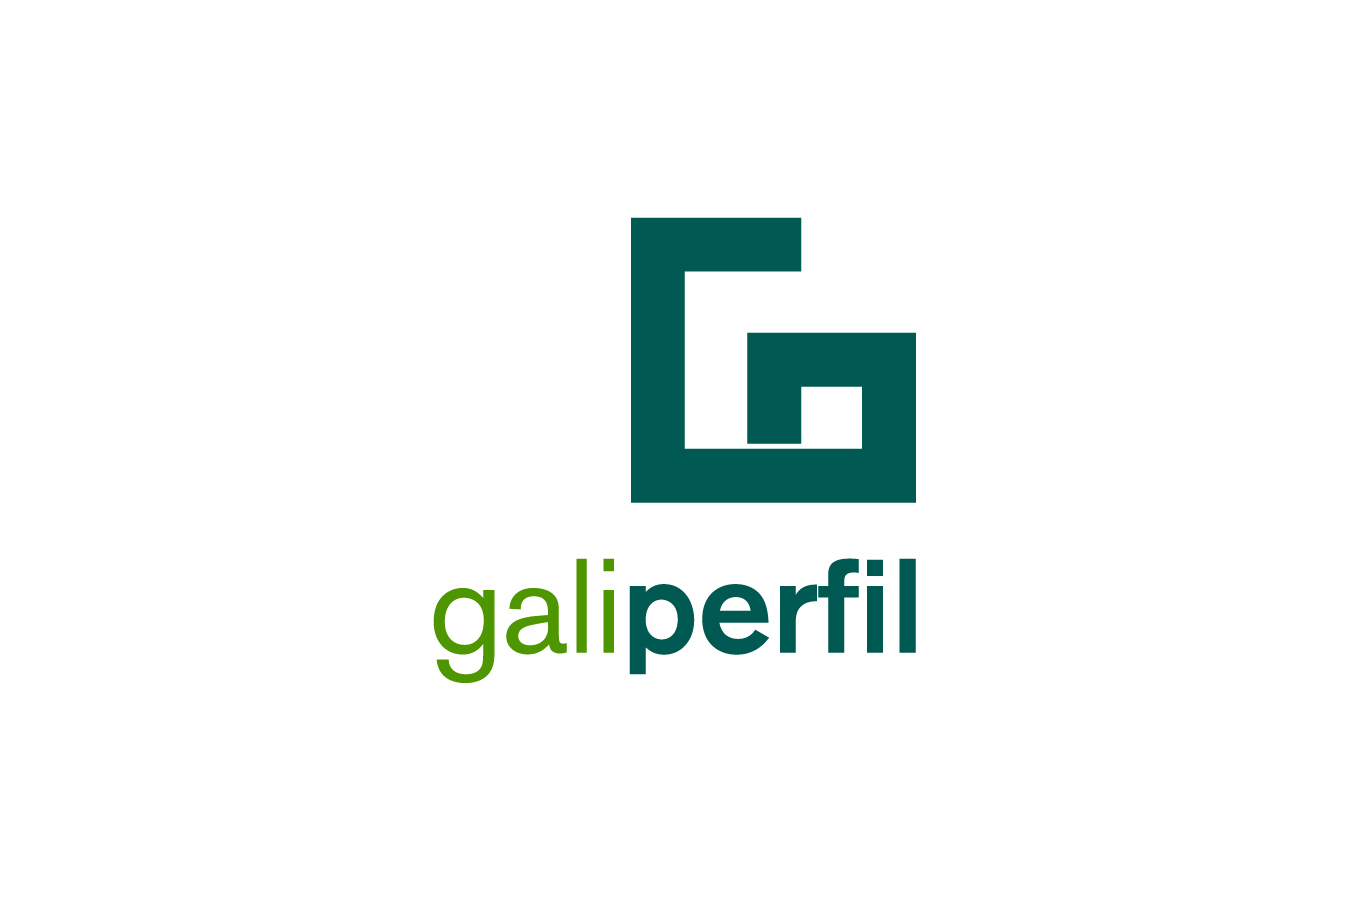 GALIPERFIL logotipo